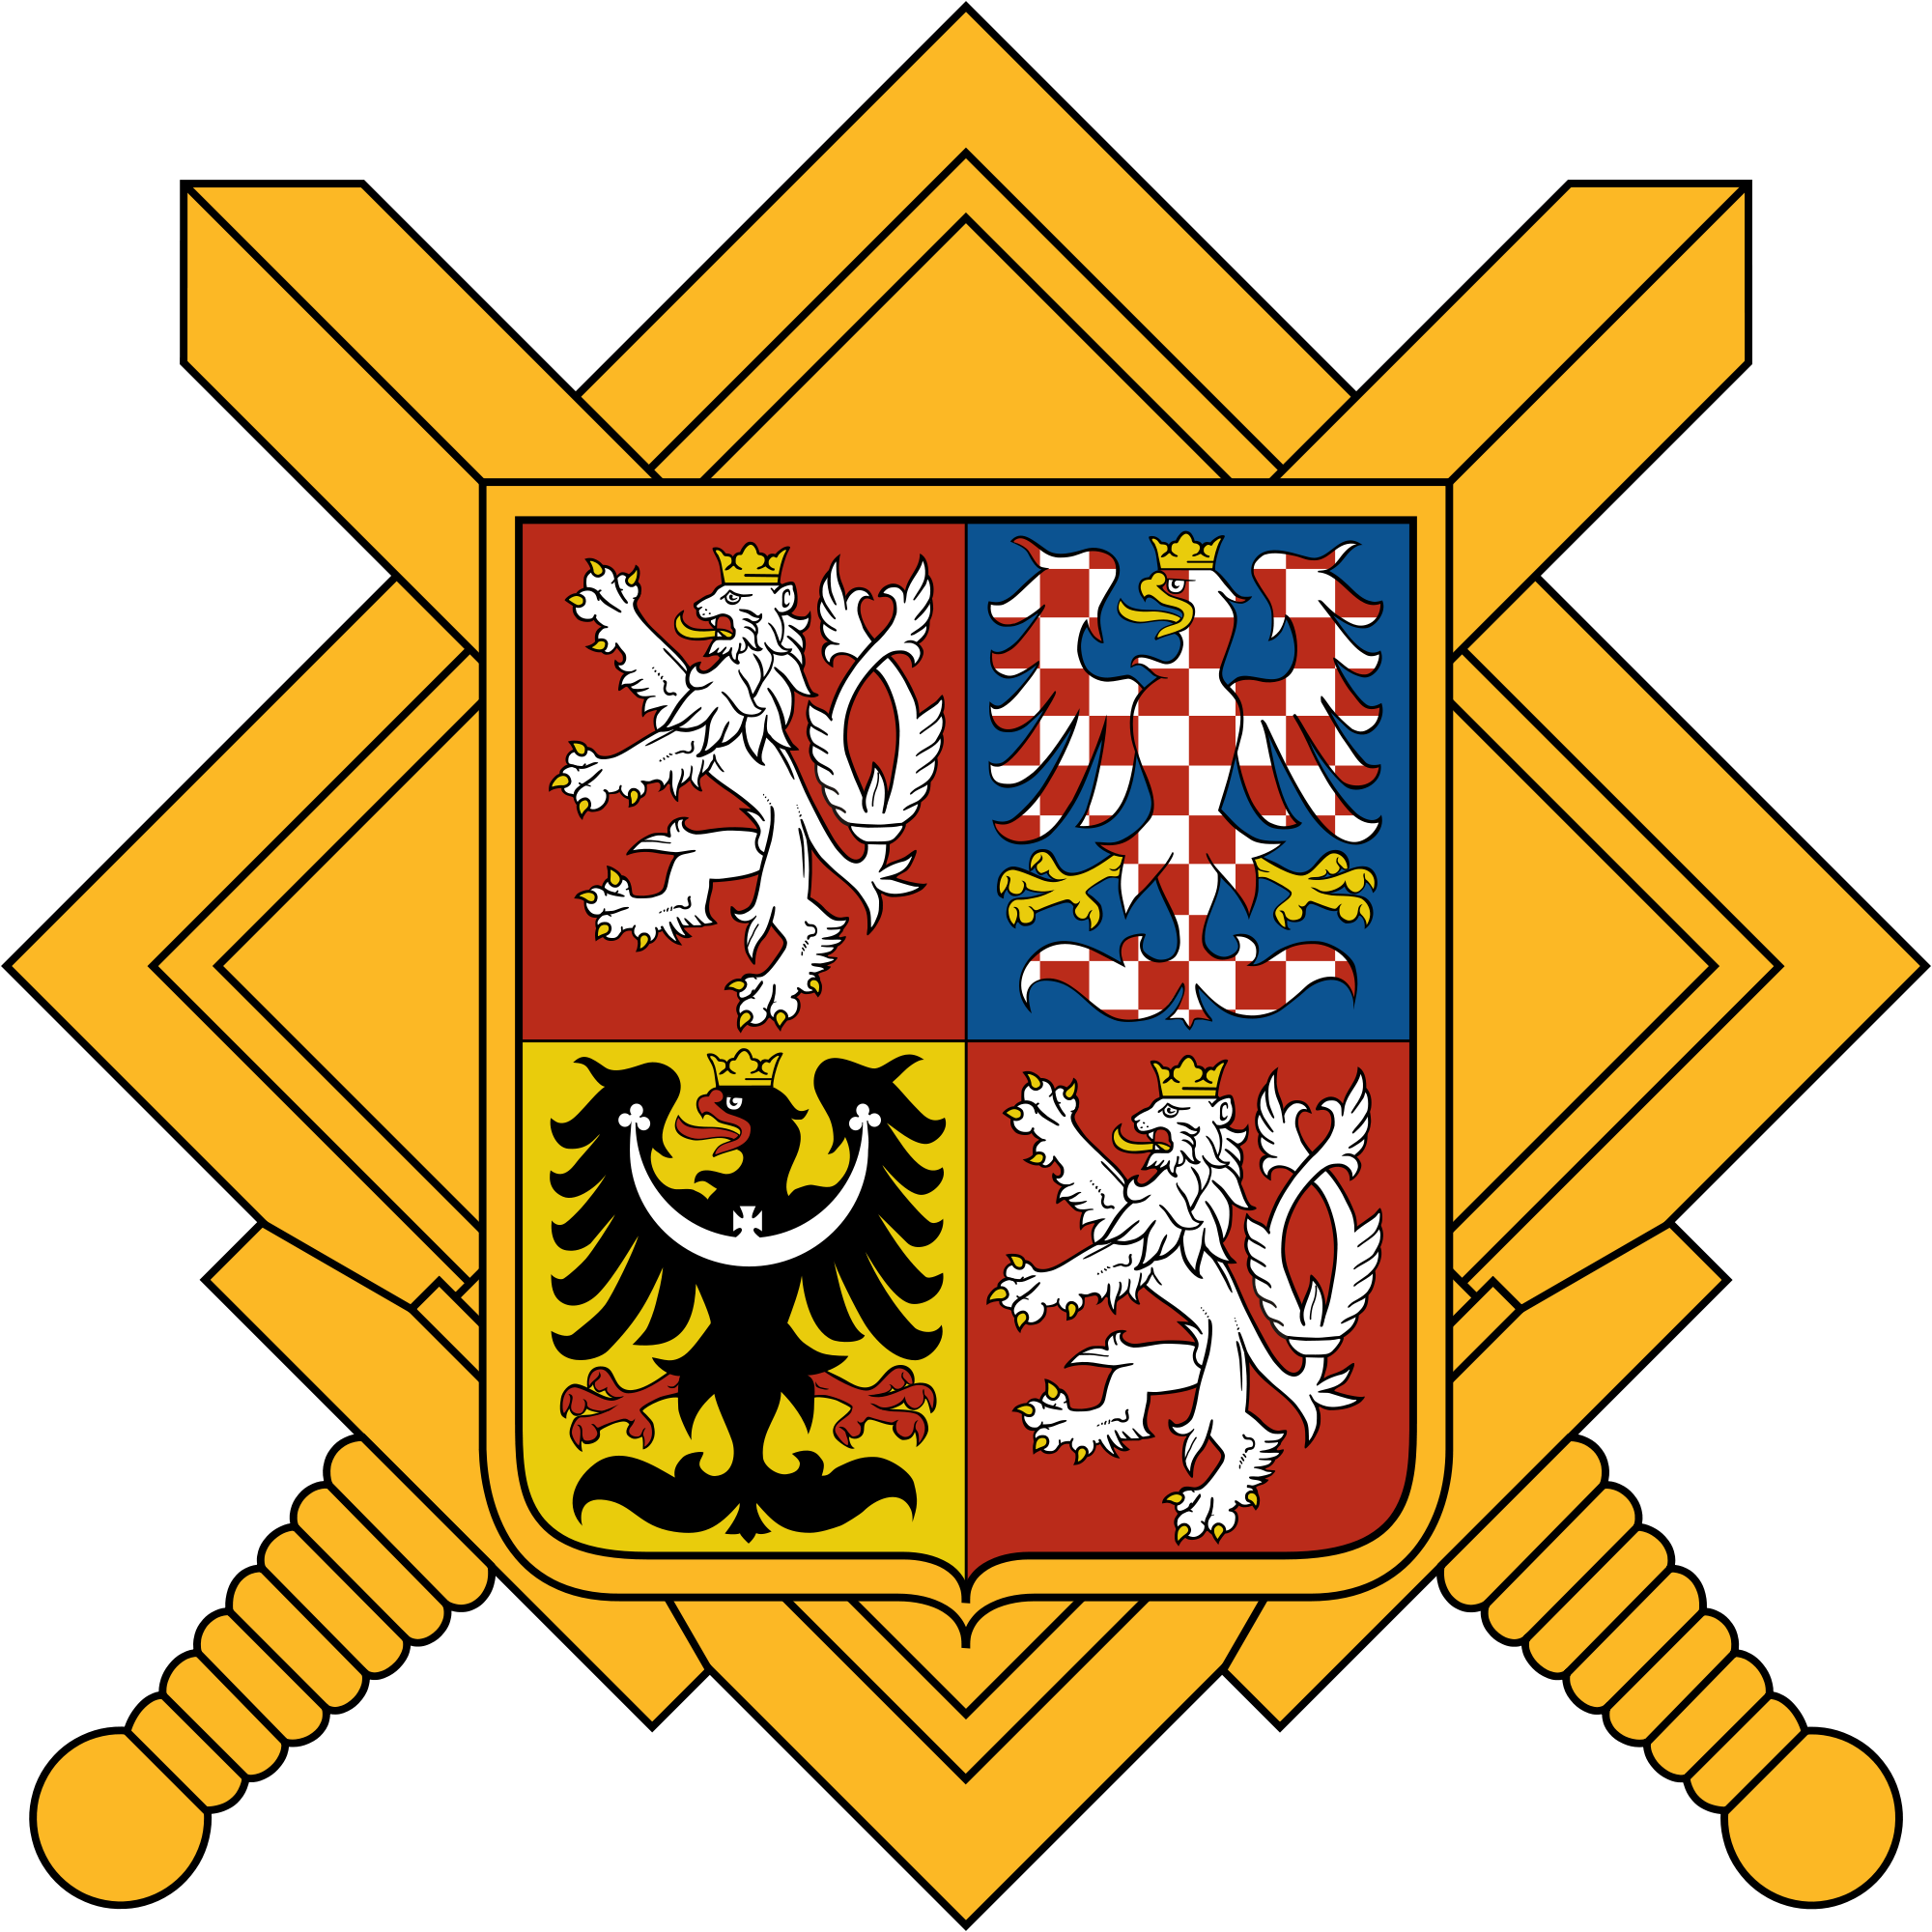 Czech armed forces czech pinterest visit this site to discover the origin and meaning of a huge selection of family crest symbols history facts information videos and pictures of family biocorpaavc